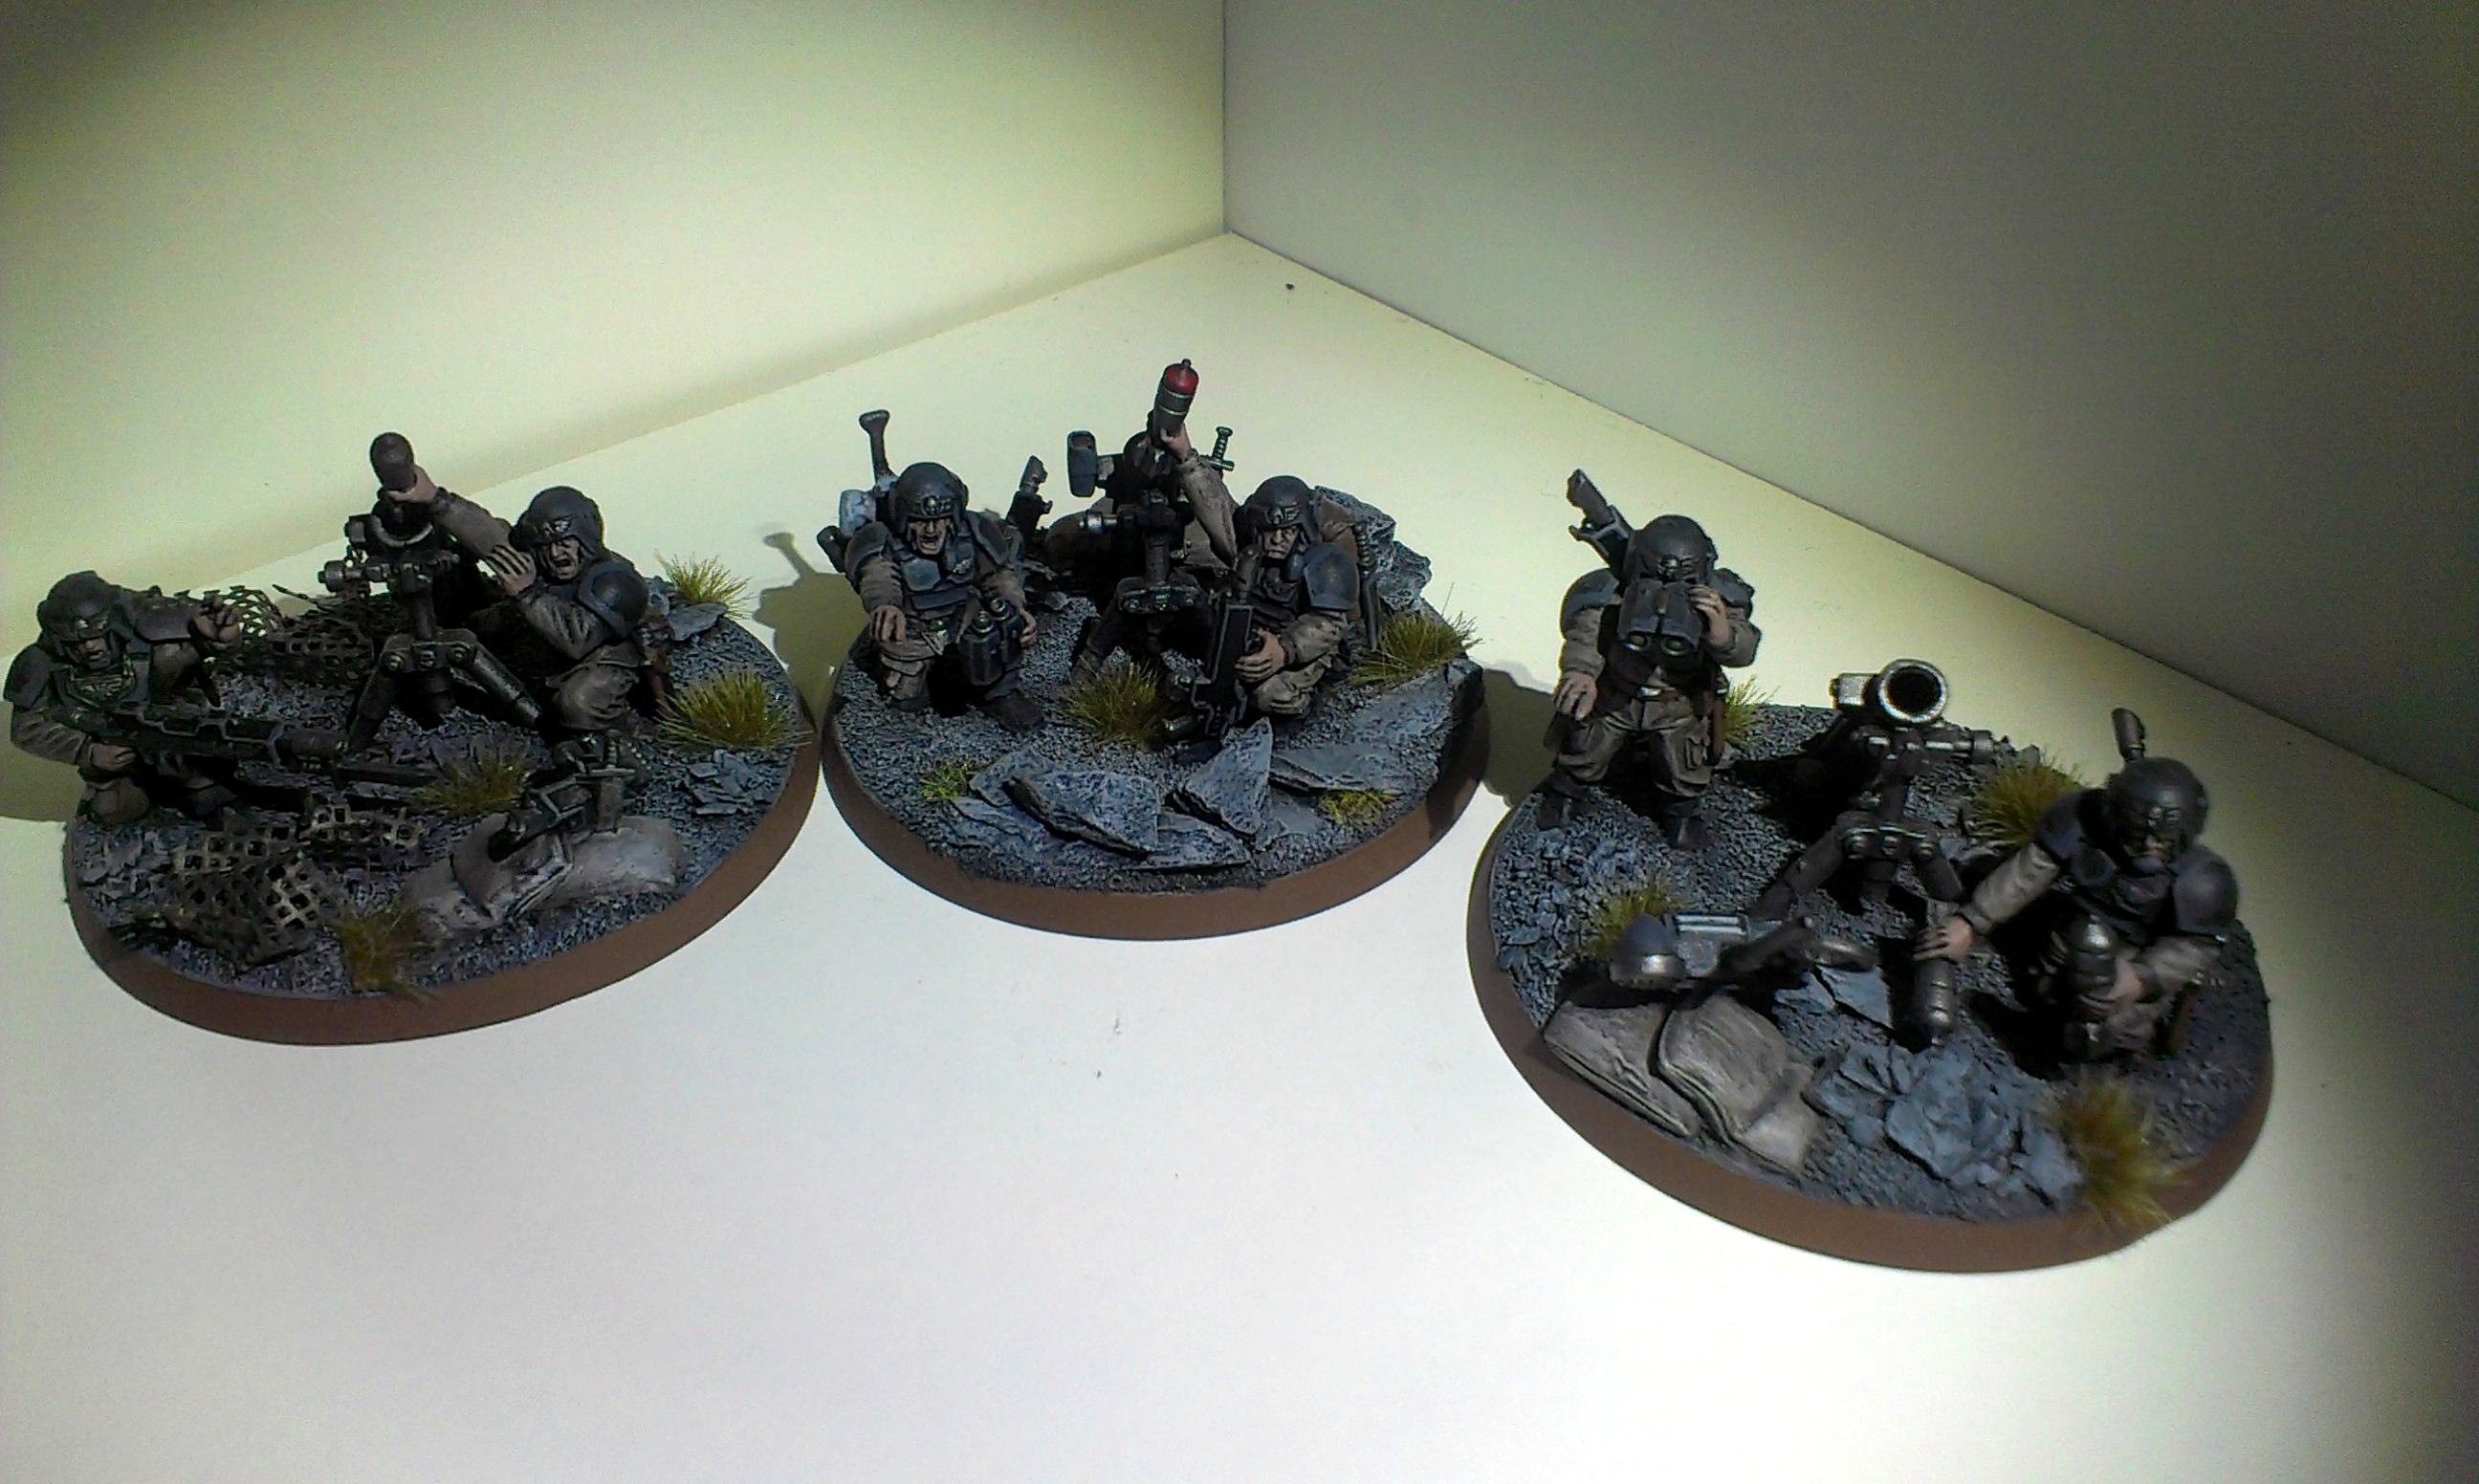 Astra Militarum, Autocannon, Cadians, Creed, Headquarters, Heavy Weapons Team, Imperial Guard, Infantry, Kell, Lascannon, Missile Launcher, Mortars, Troop Choice, Warhammer 40,000